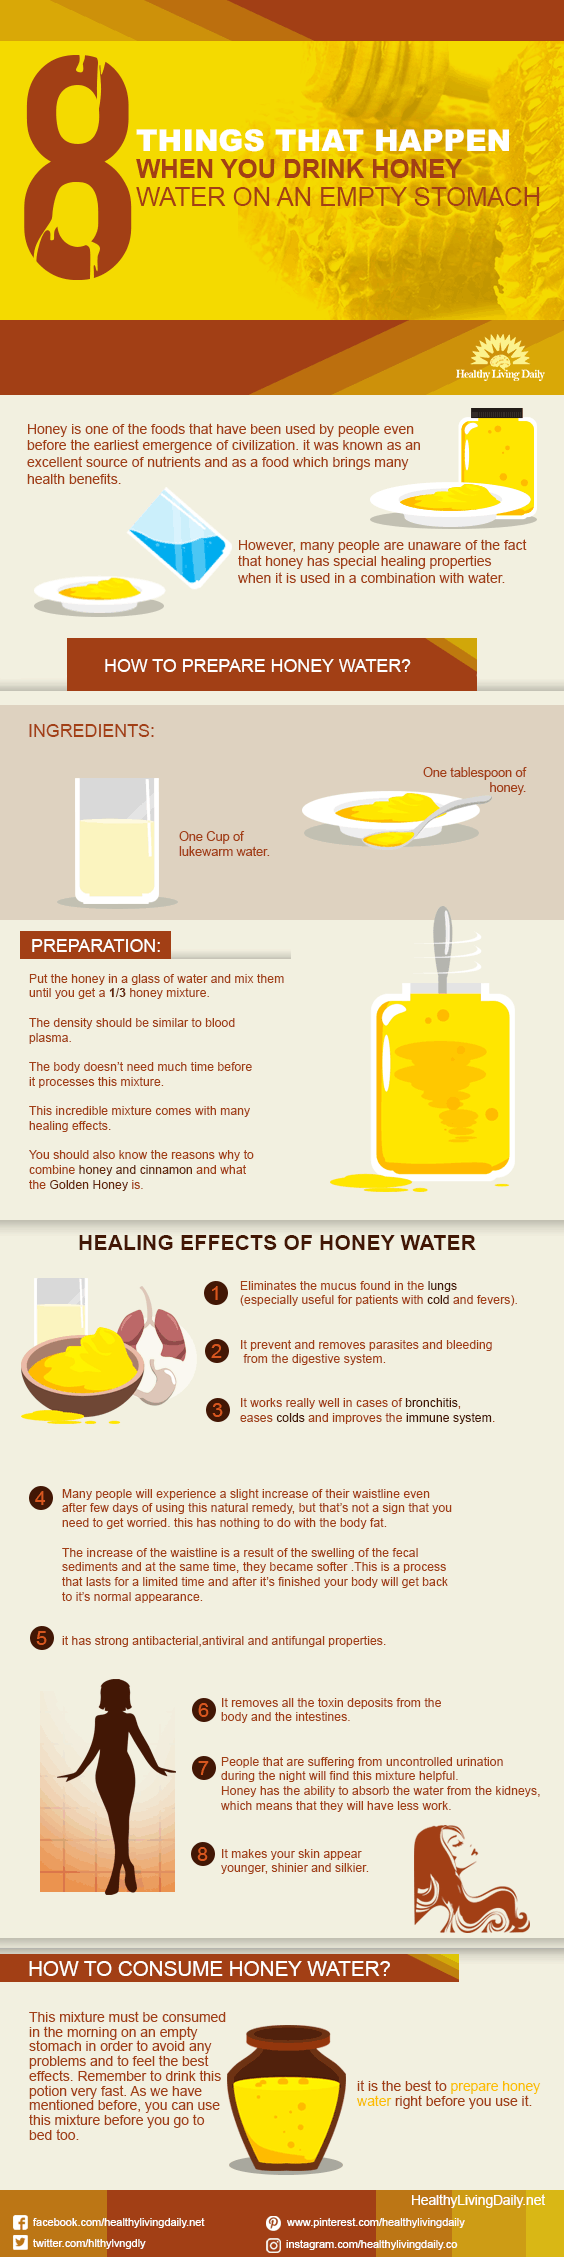 infographic image of honey water benefits